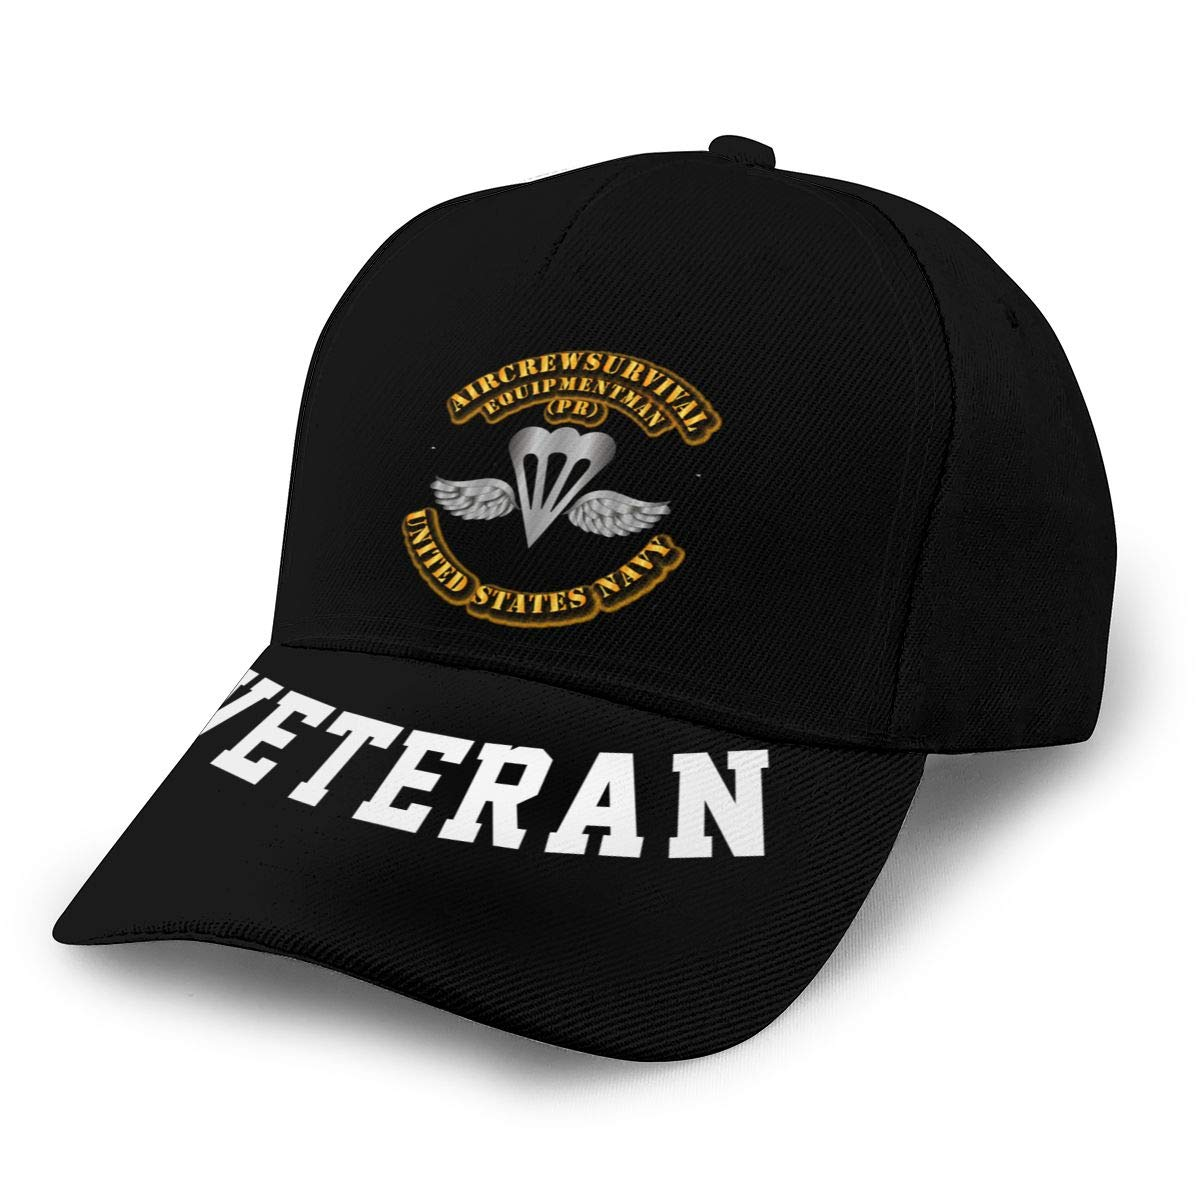 Navy Rate Aircrewsurvival Equipmentman Baseball Cap Dad Hat Unisex Classic Sports Hat Peaked Cap